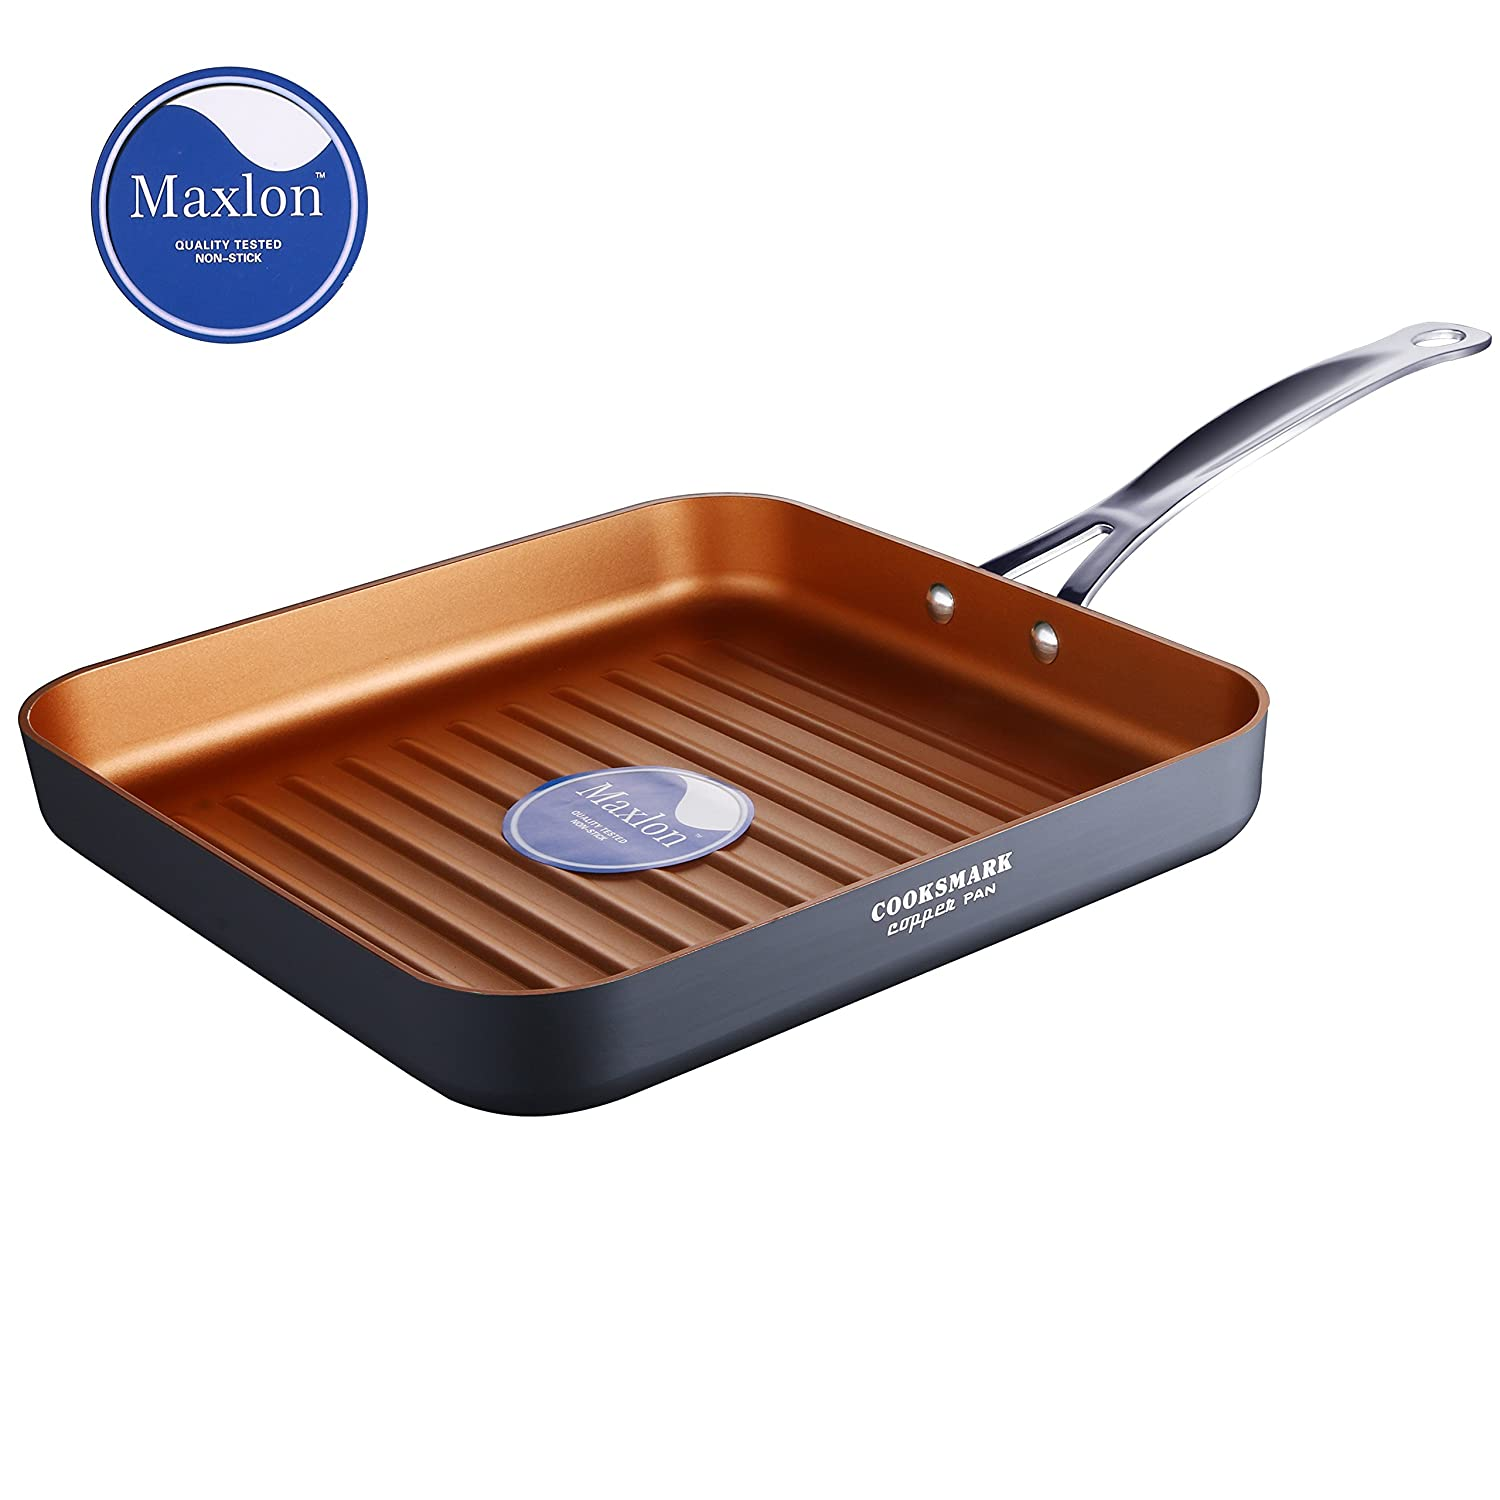 COOKSMARK Copper Pan 26CM (10-Inch) Nonstick Deep Square Grill Pan, Deep Griddle Pan with Stainless Steel Handle Oven Safe Free 1151012